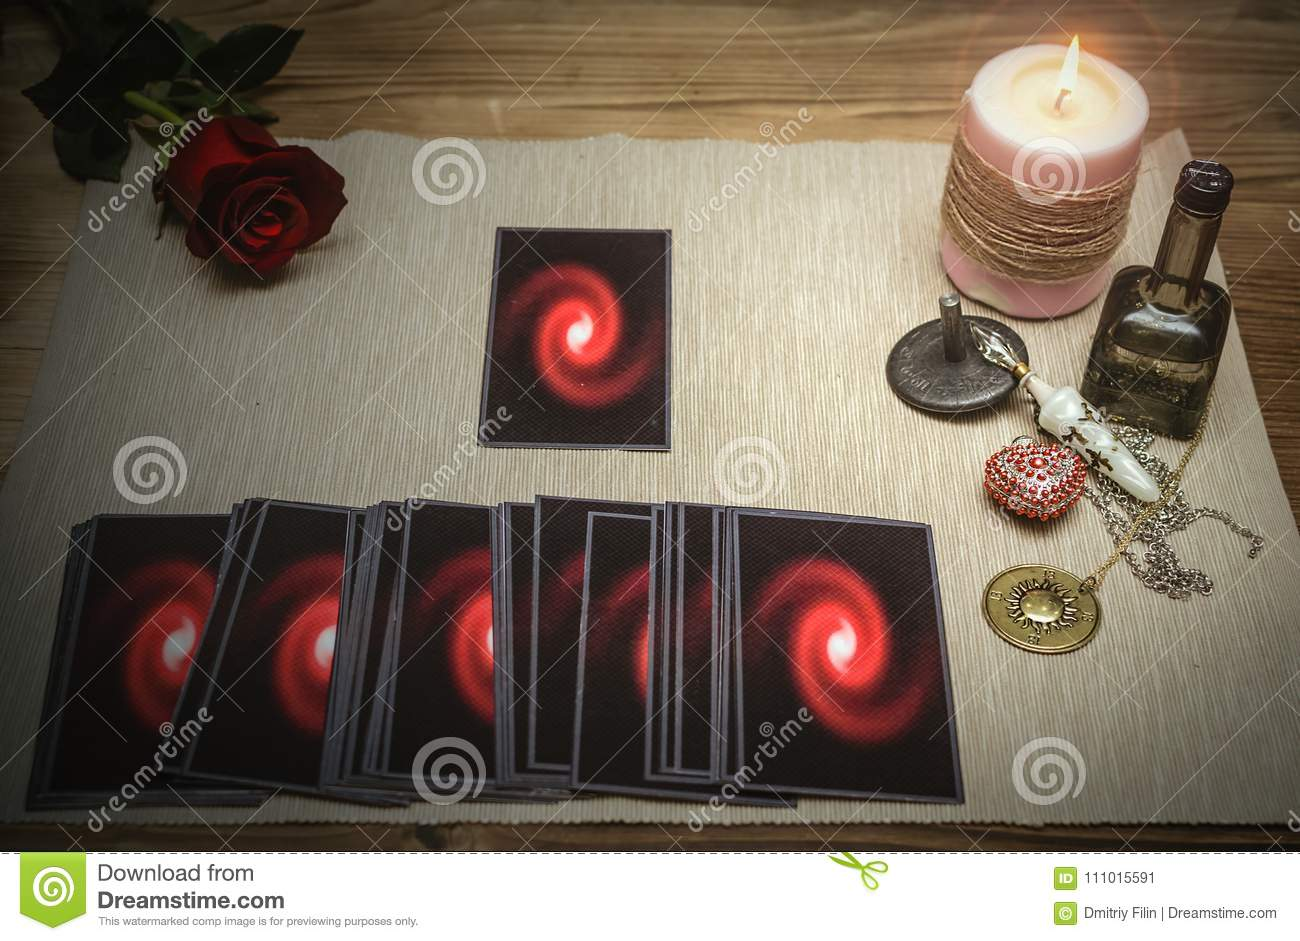 Tarot Cards  Fortune Teller  Divination  Stock Image - Image of rose